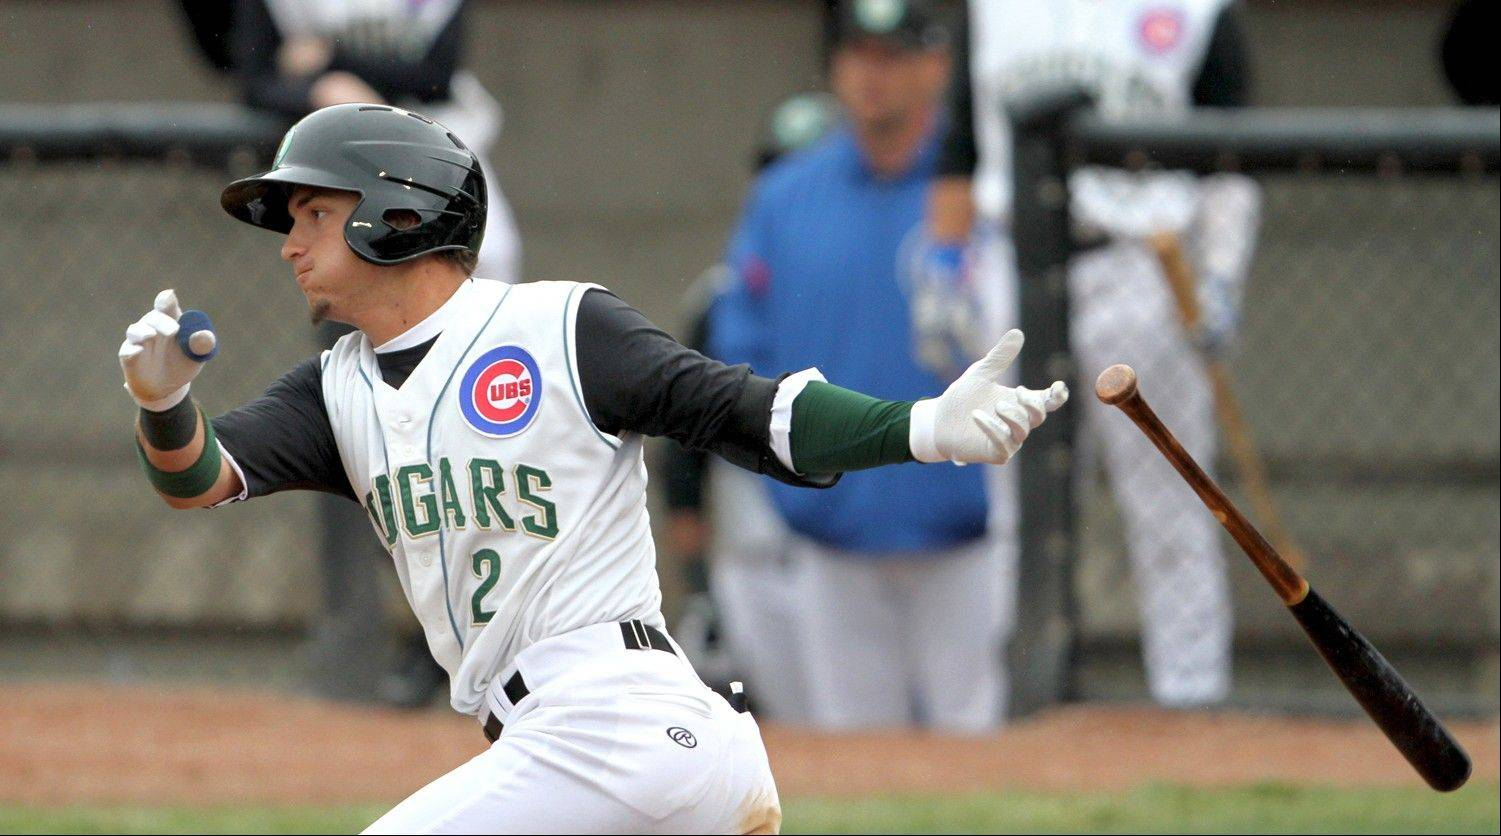 Cubs' top prospects get a lesson from Hawks